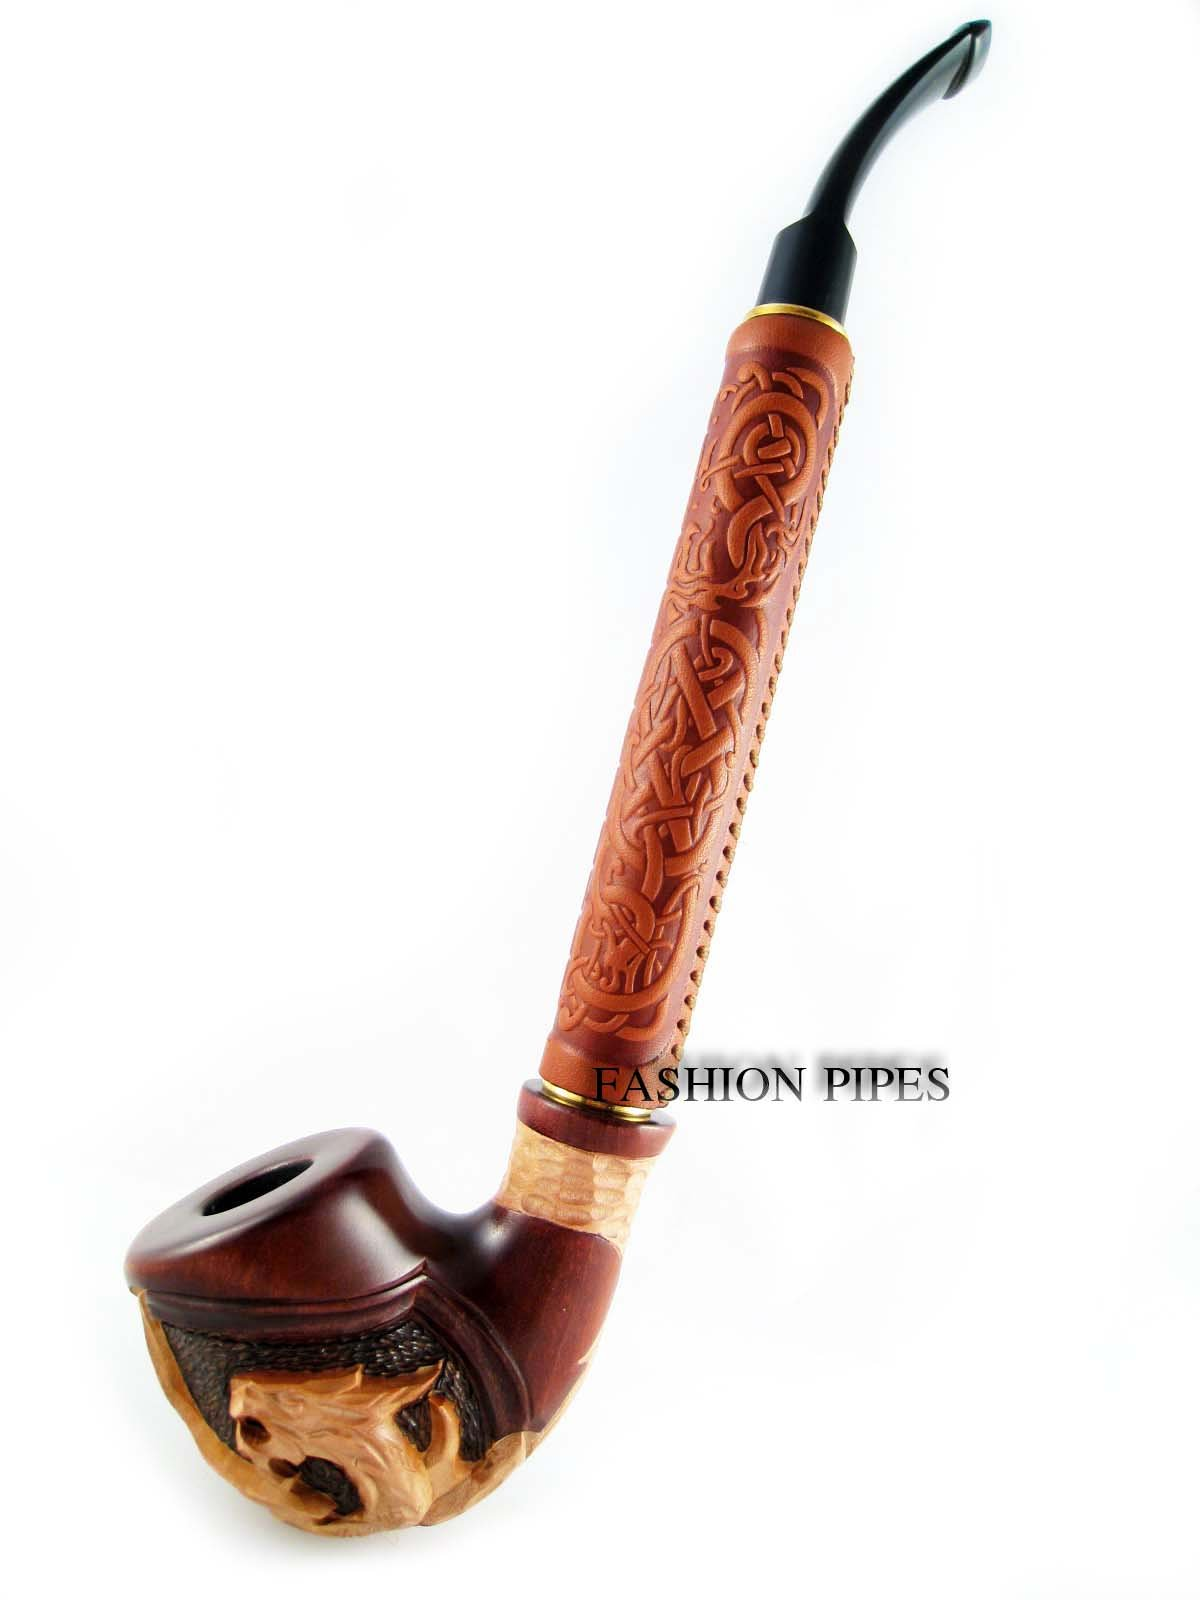 Exclusive Fashion Pipes - Long Churchwarden ''DRAGON'' Tobacco Smoking Pipe (2, 2) by Fashion Pipes (Image #5)